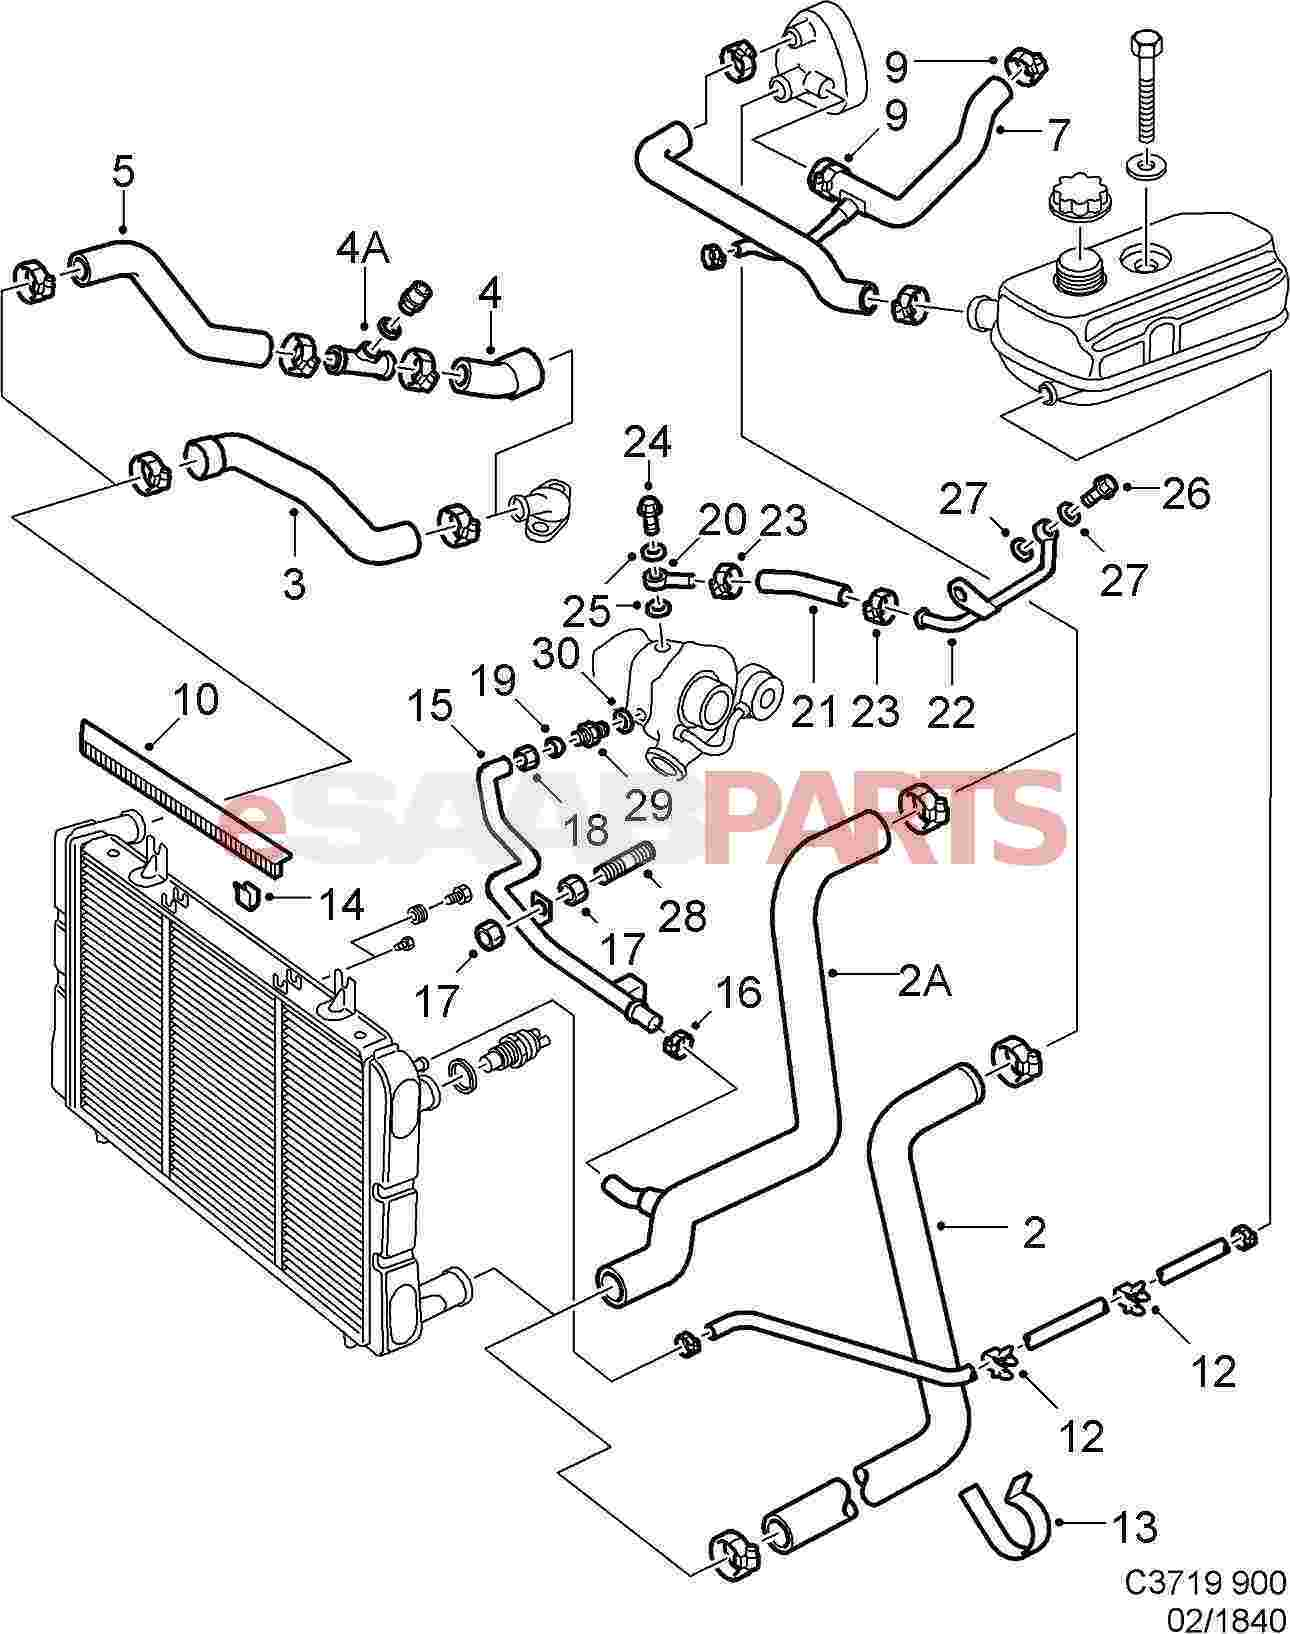 Saab parts diagram wiring info u2022 rh dasdes co